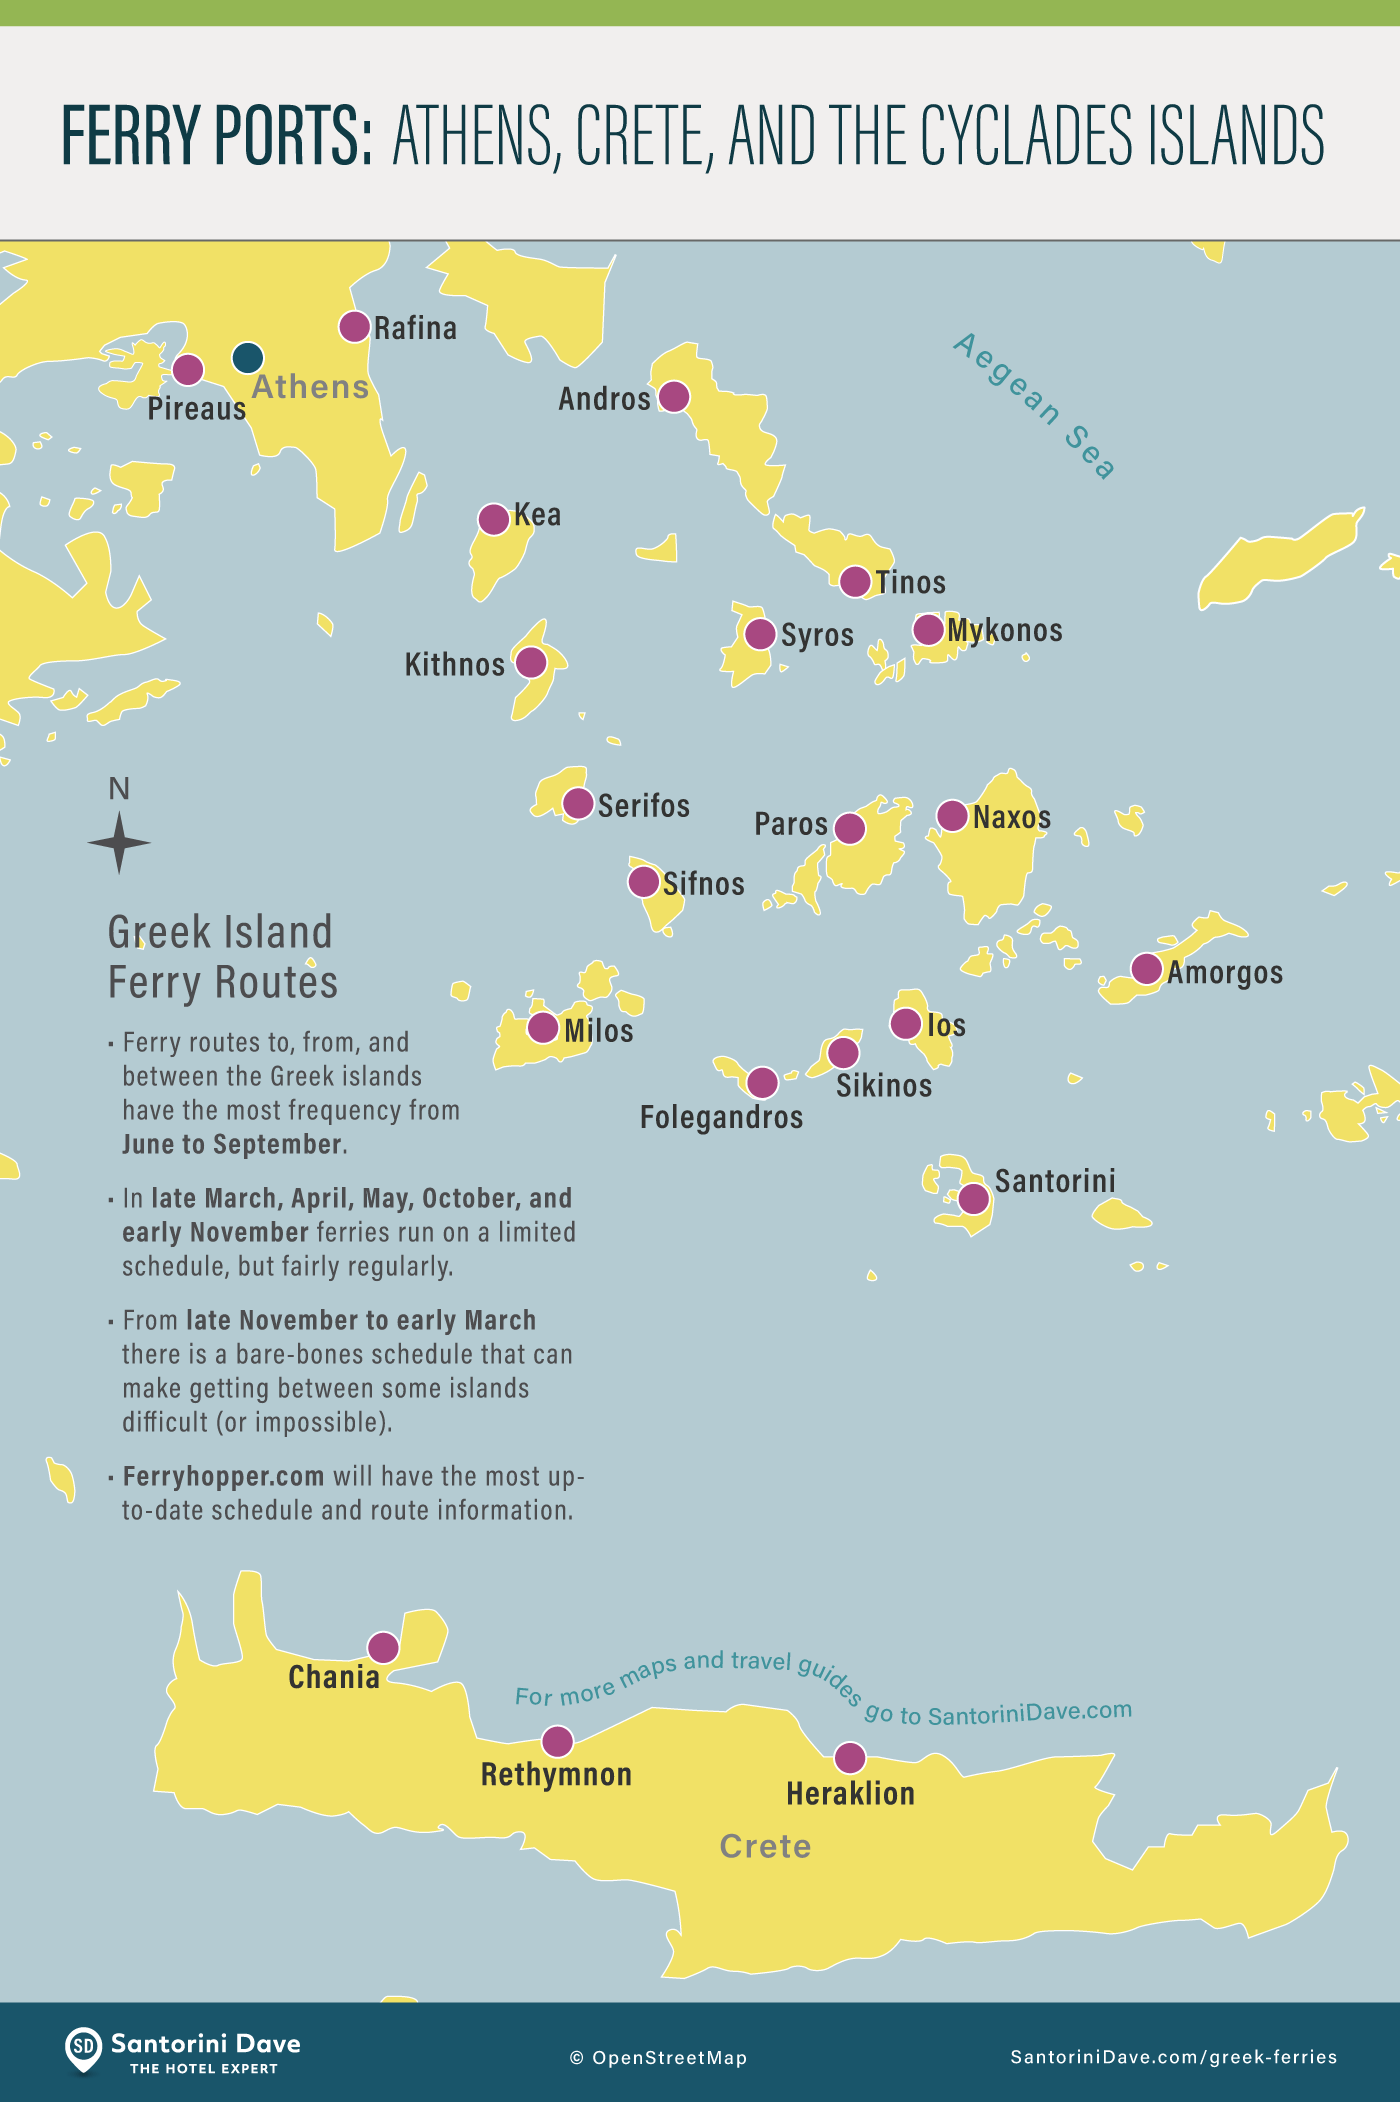 Map indicating the most popular ferry ports in the Greek Islands